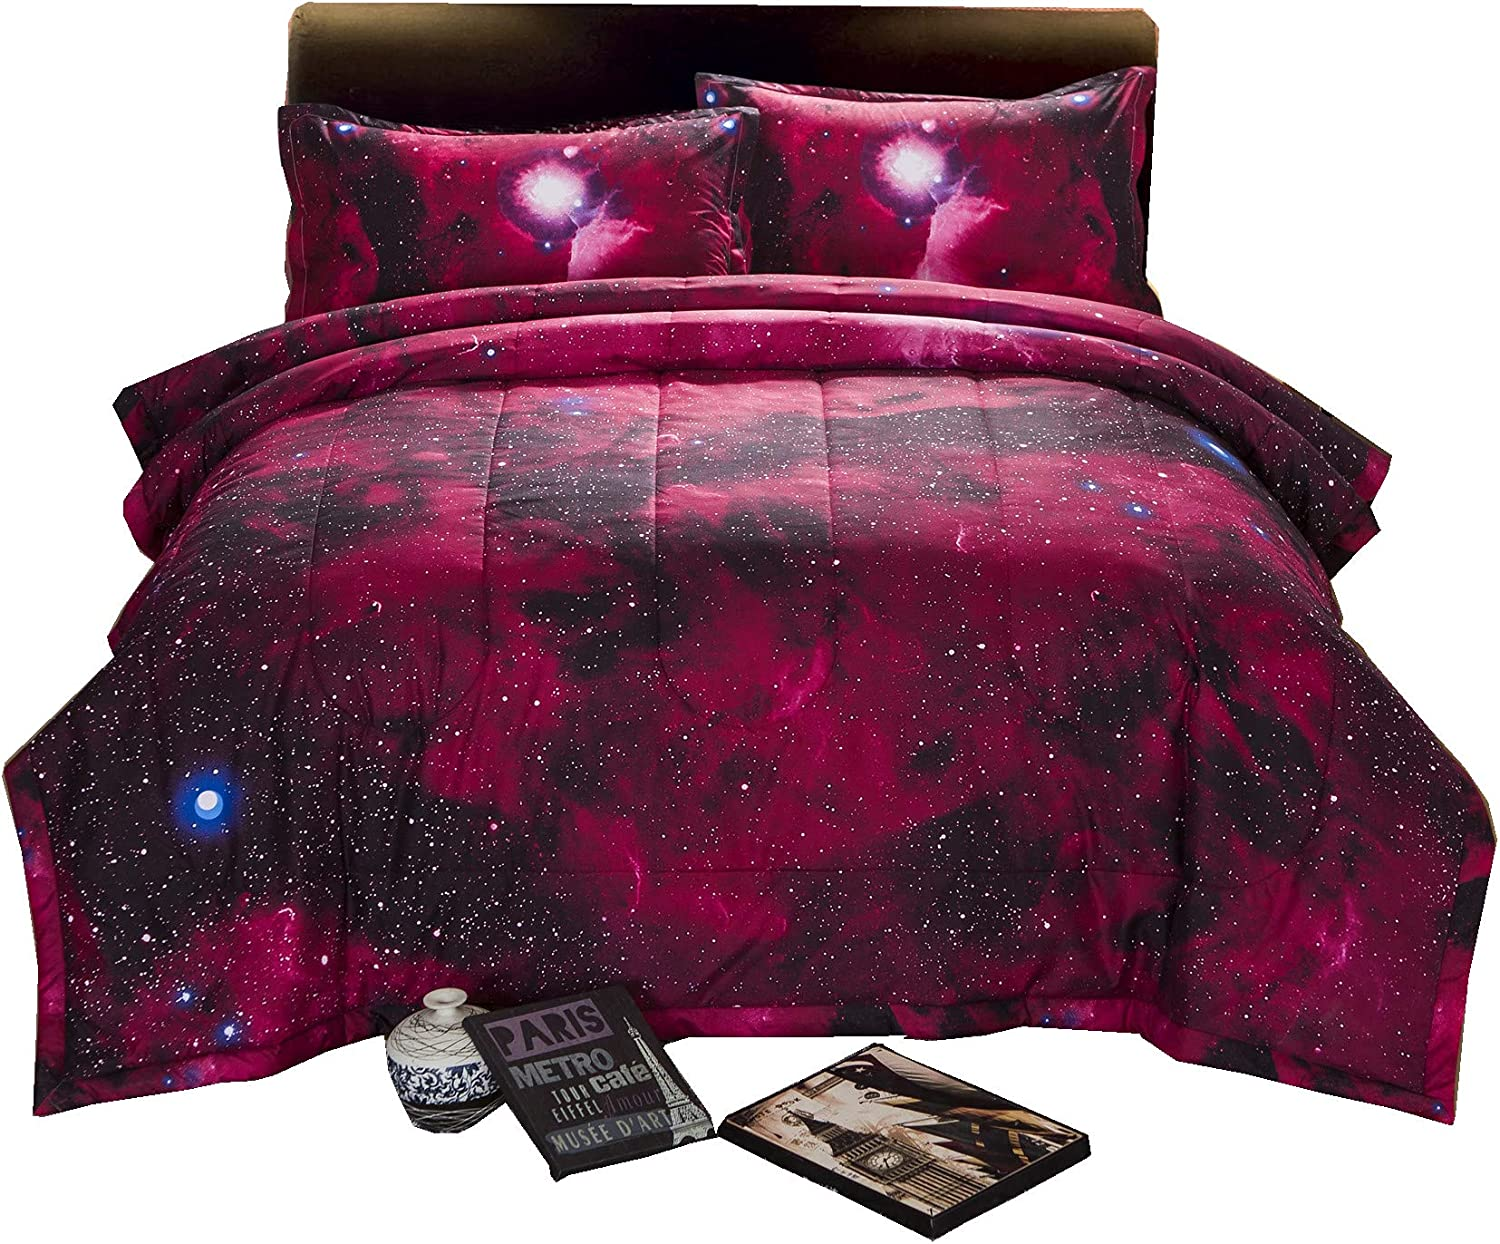 A Nice Night 3D Galaxy Blanket Comforter Bedding Sets Home Textile with Comforter Pillowcase